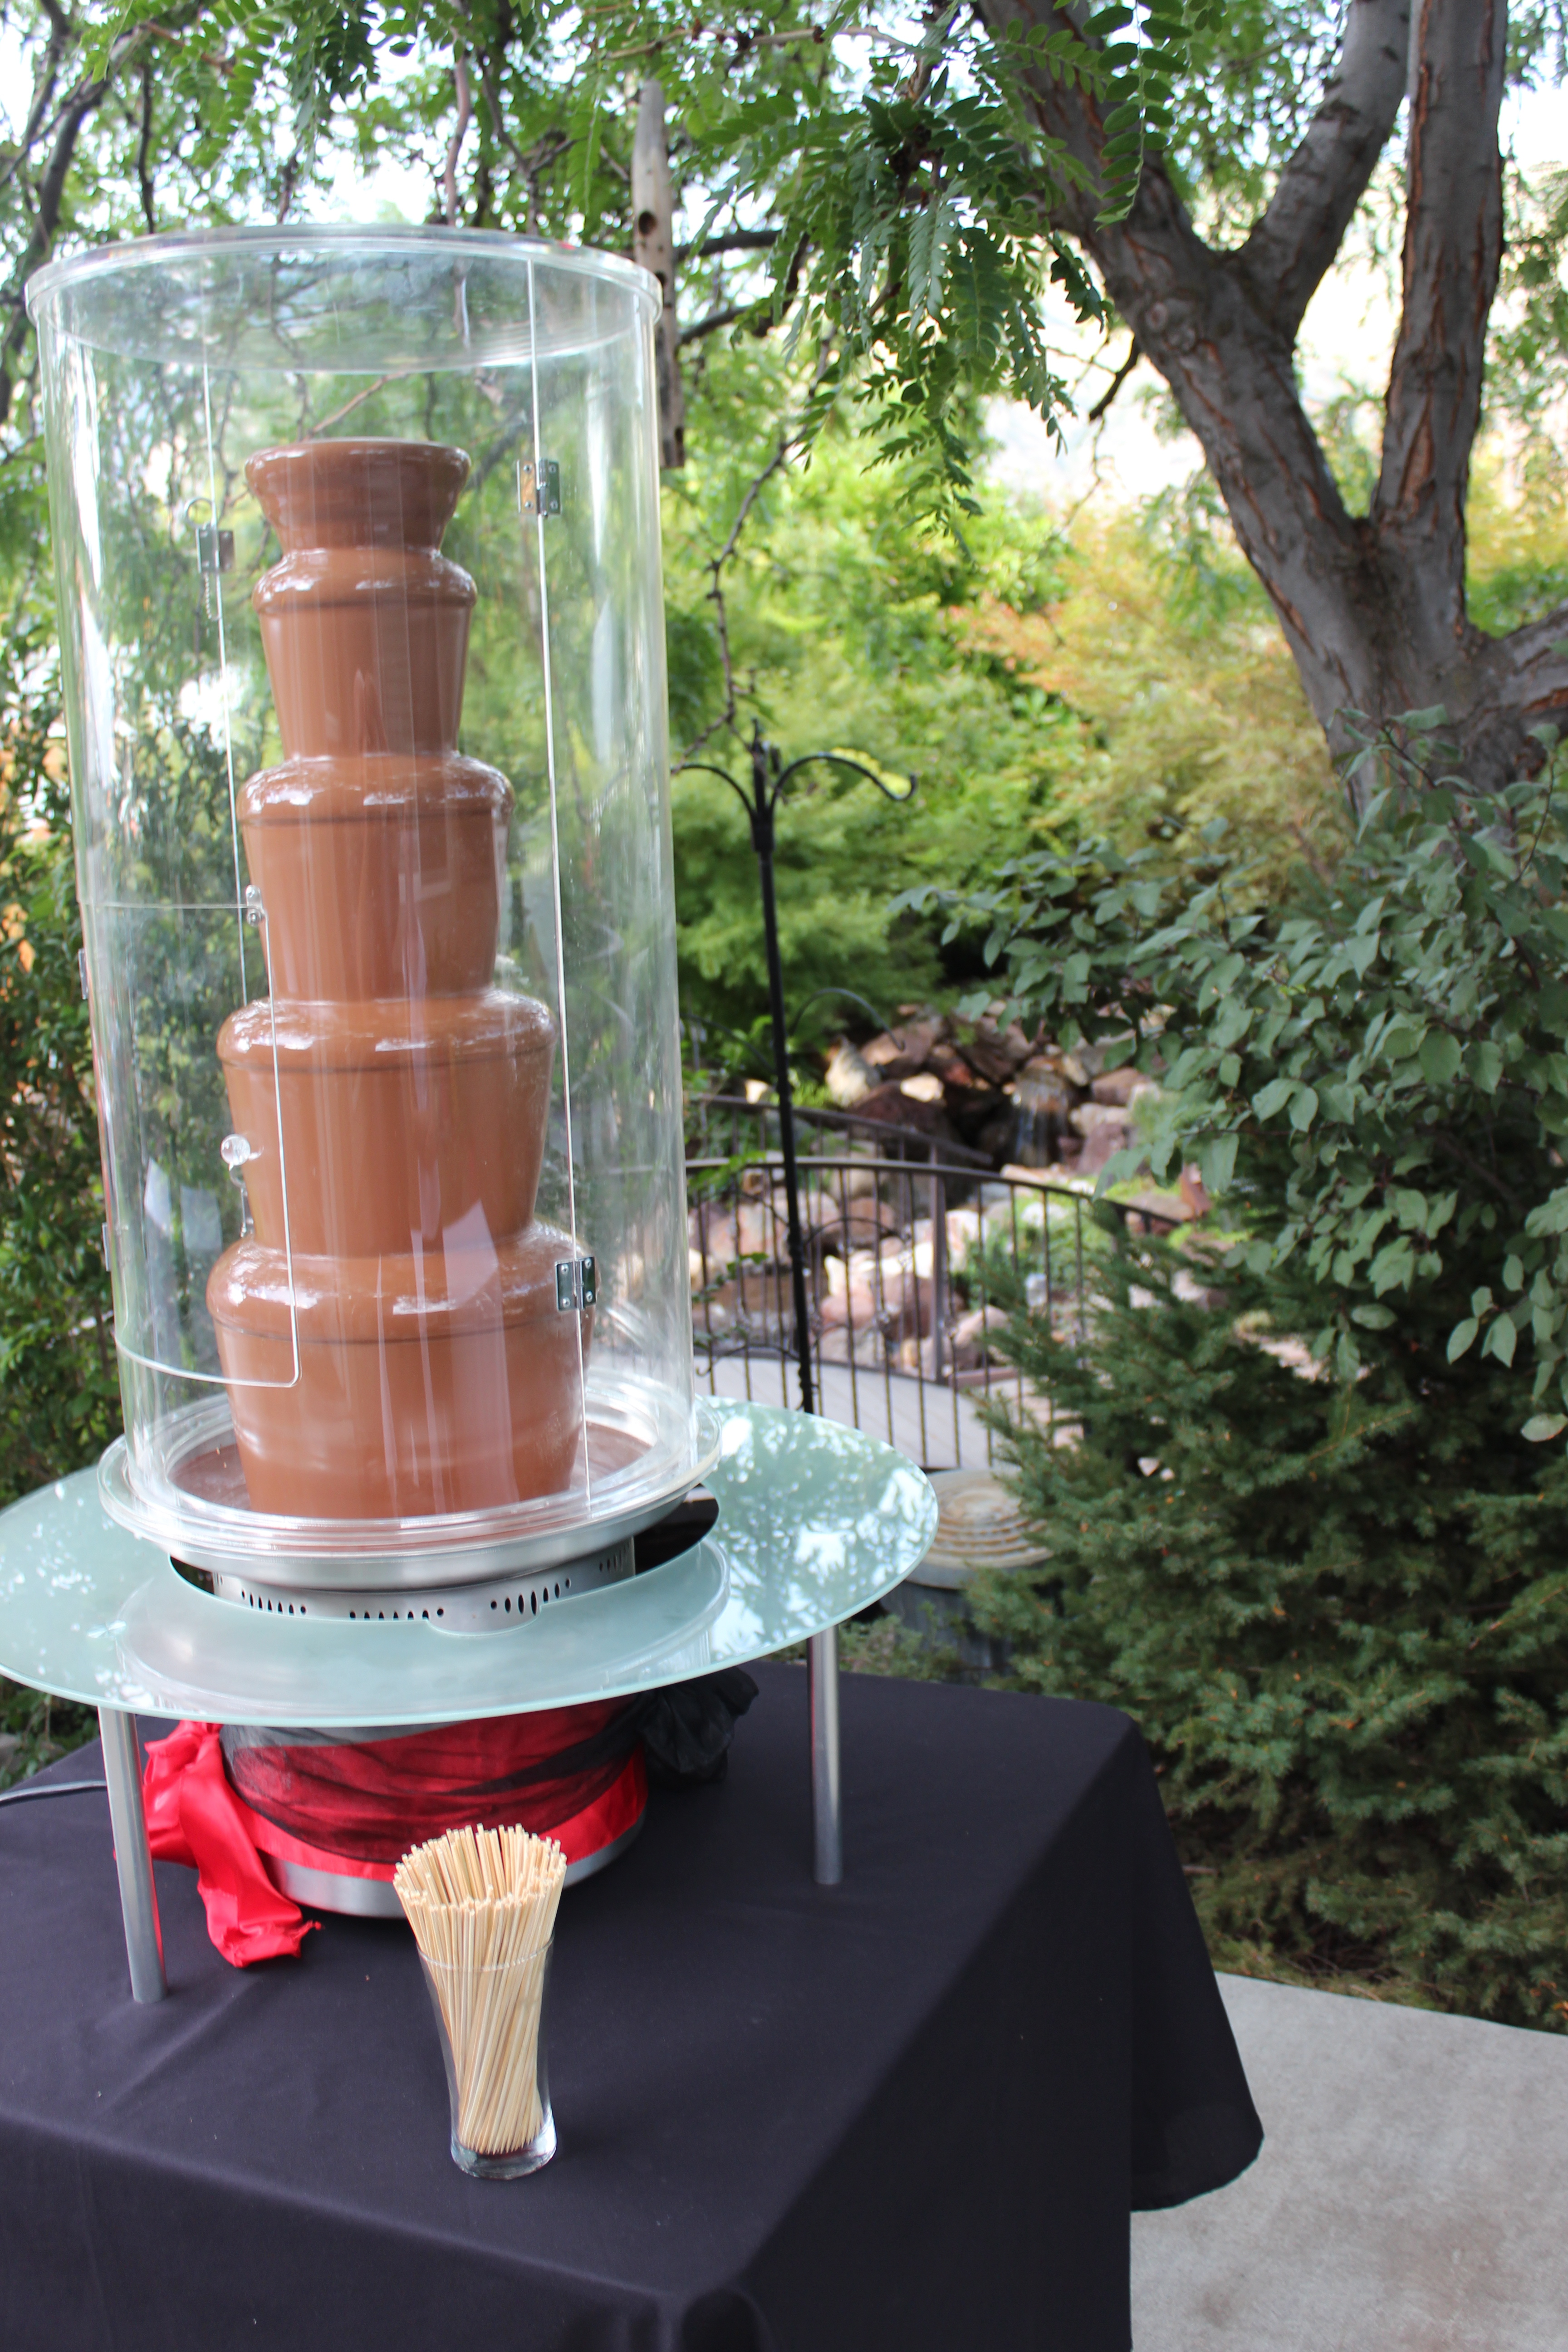 Chocolate Fountains under the weather | Utah Chocolate Fountains ...